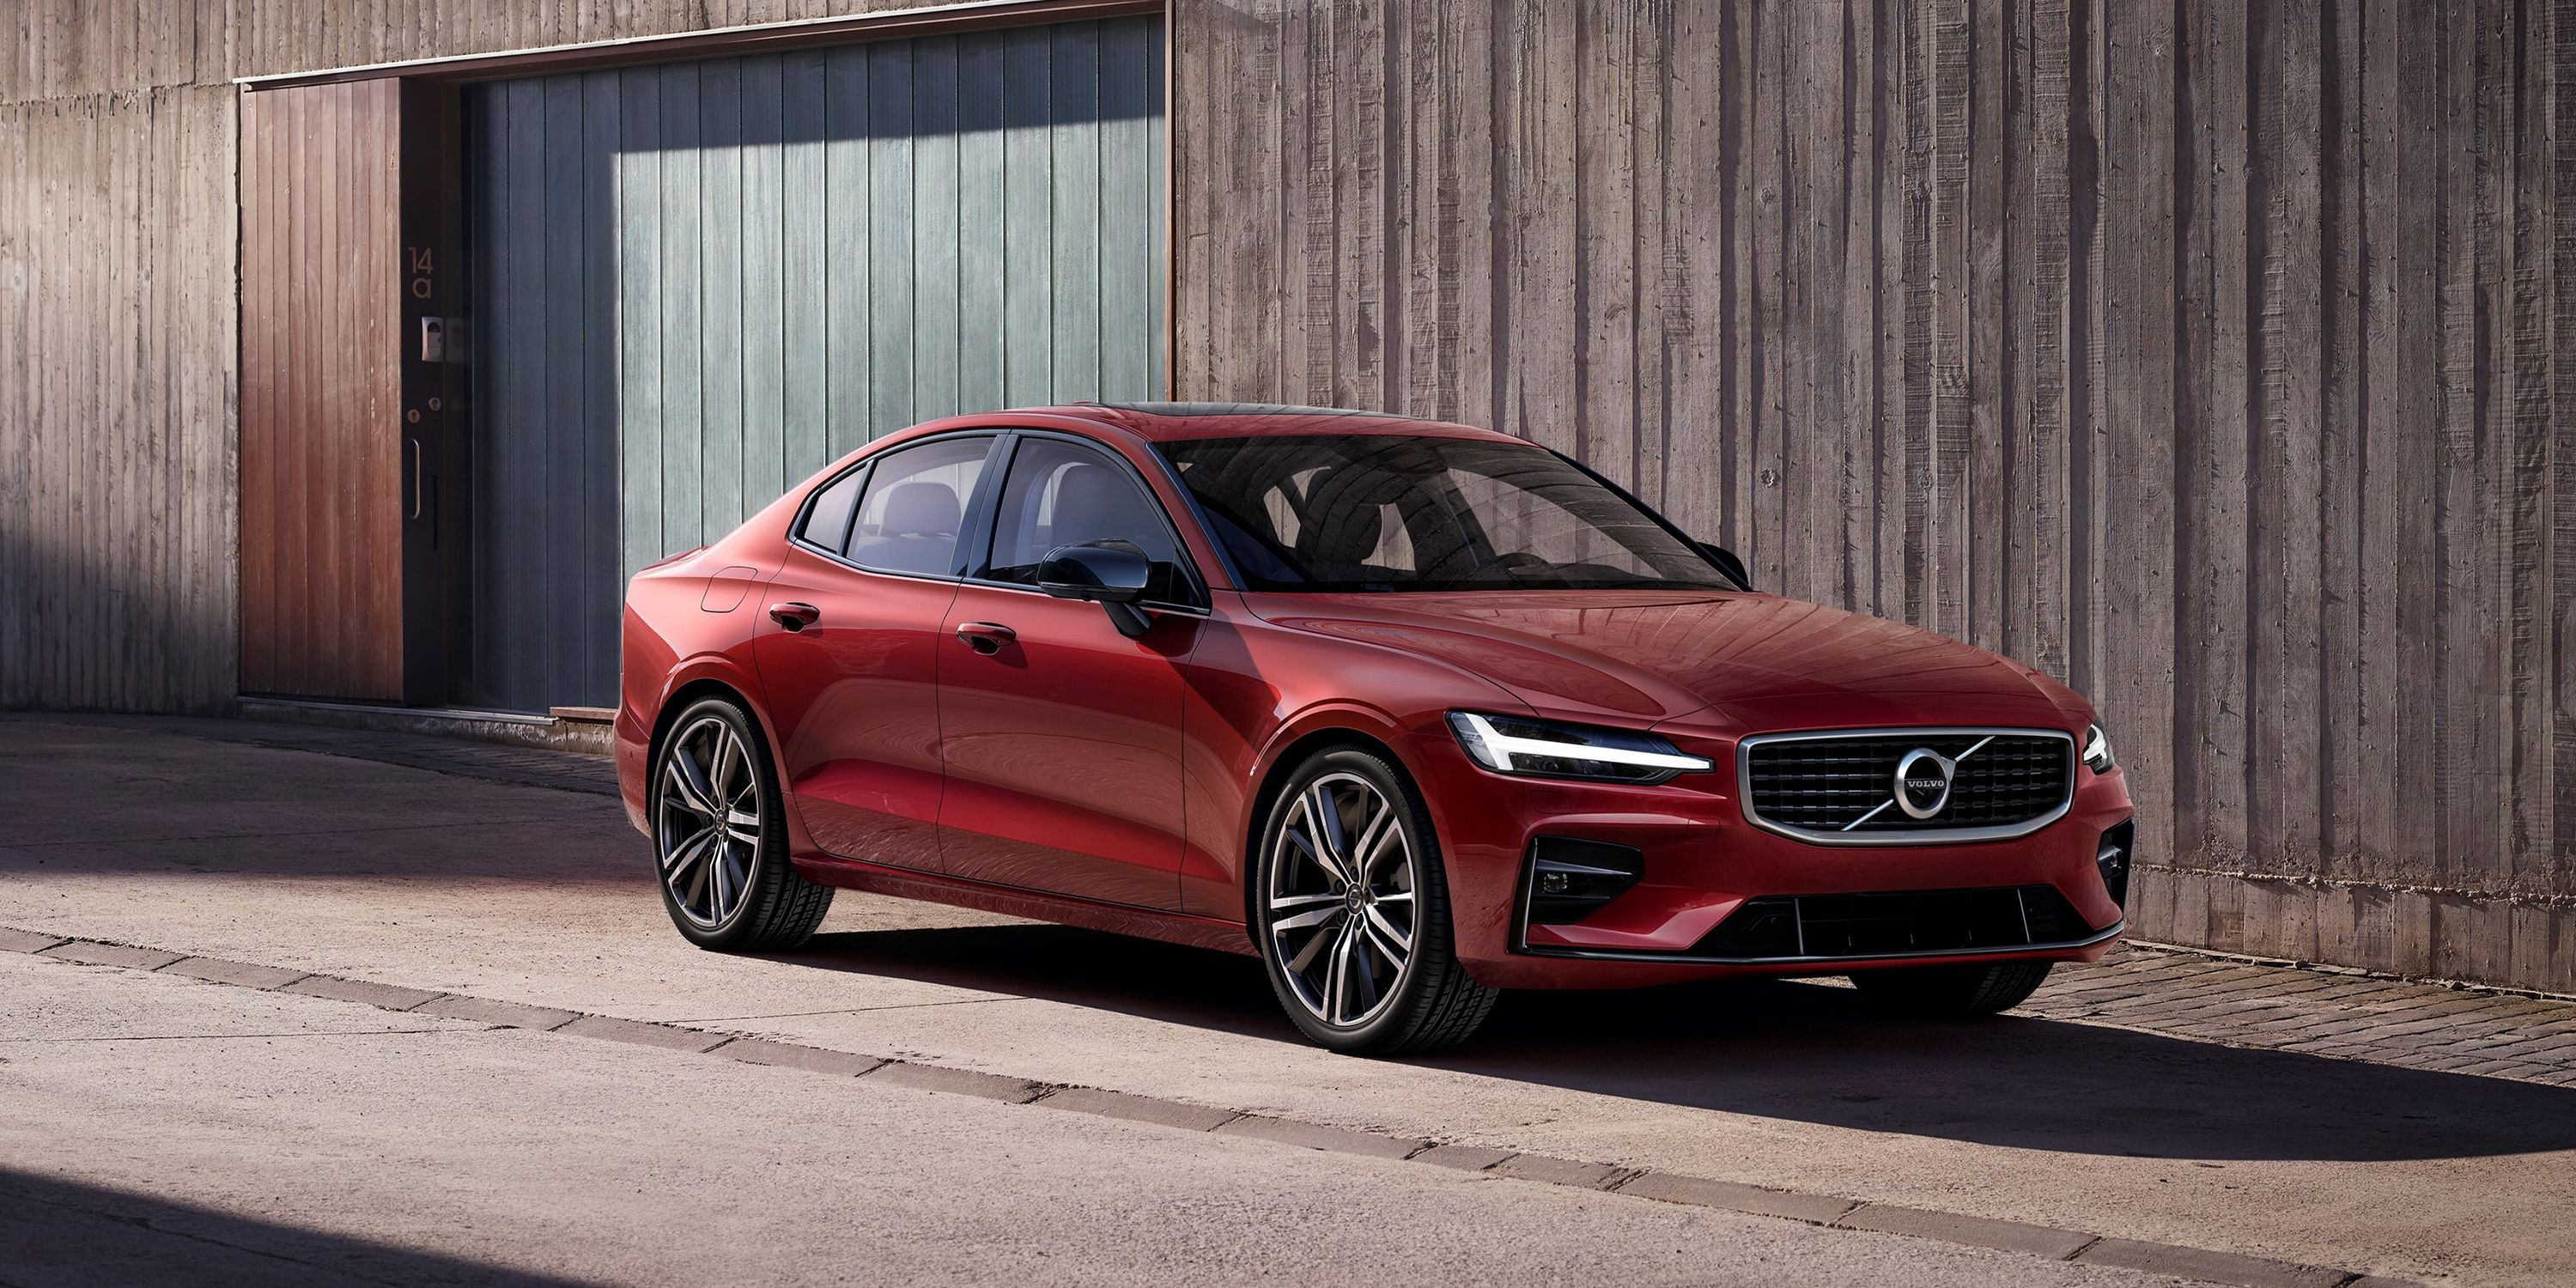 2019 Volvo S60 T8 Polestar Engineered Specs And Photos Of New Sedan